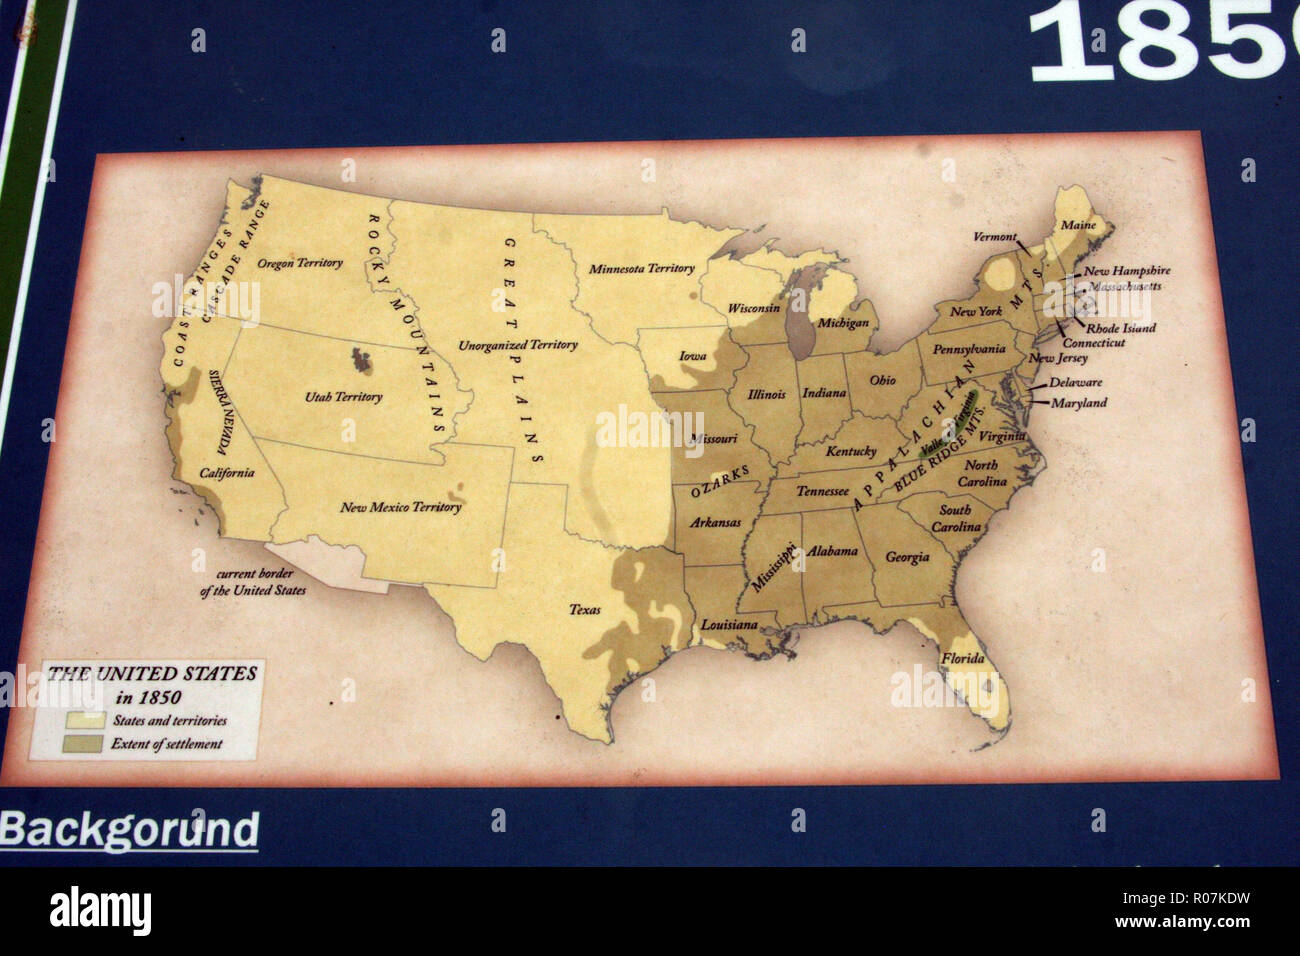 Cartina Costa Est Usa.Old Map Of The United States High Resolution Stock Photography And Images Alamy